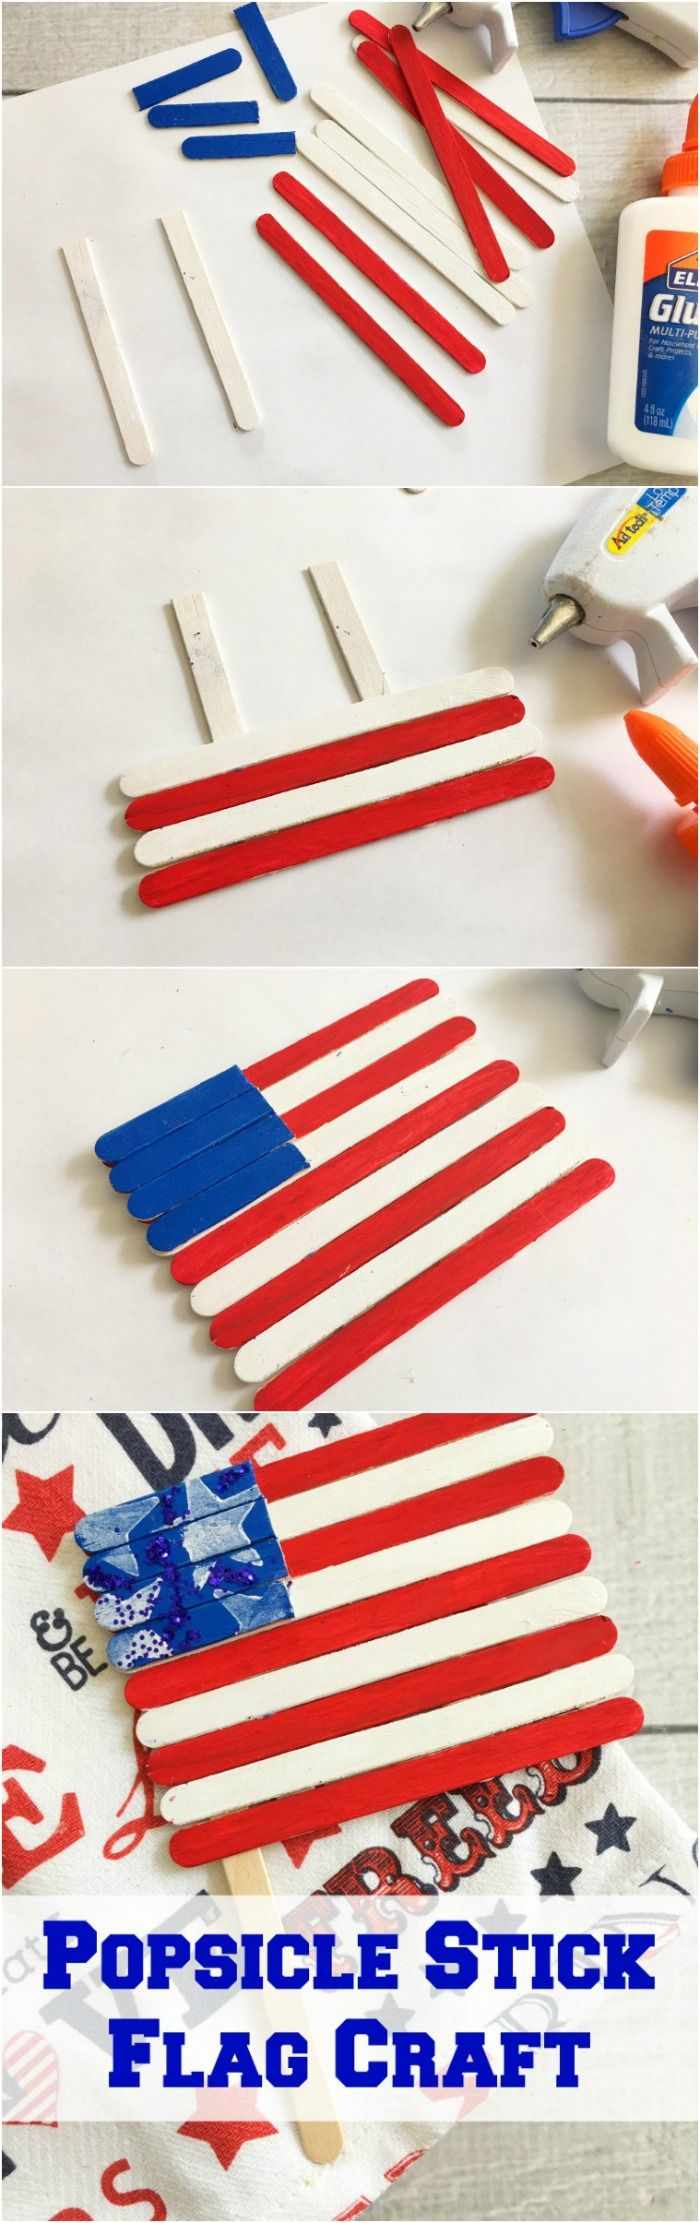 how to make crafts with popsicle sticks